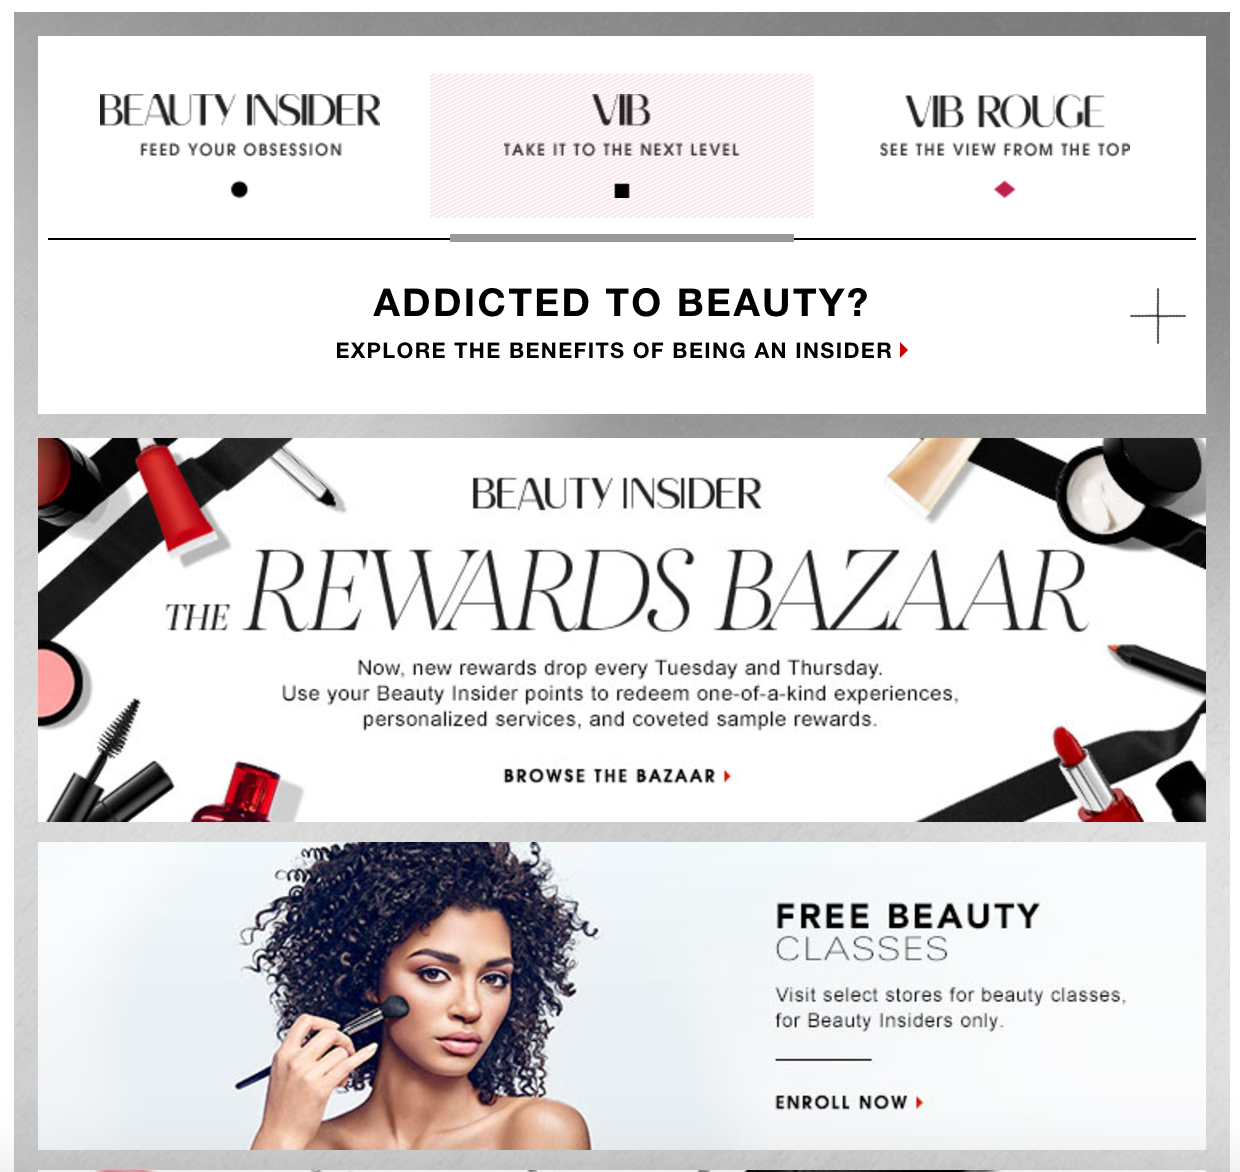 Sephora's customer loyalty program